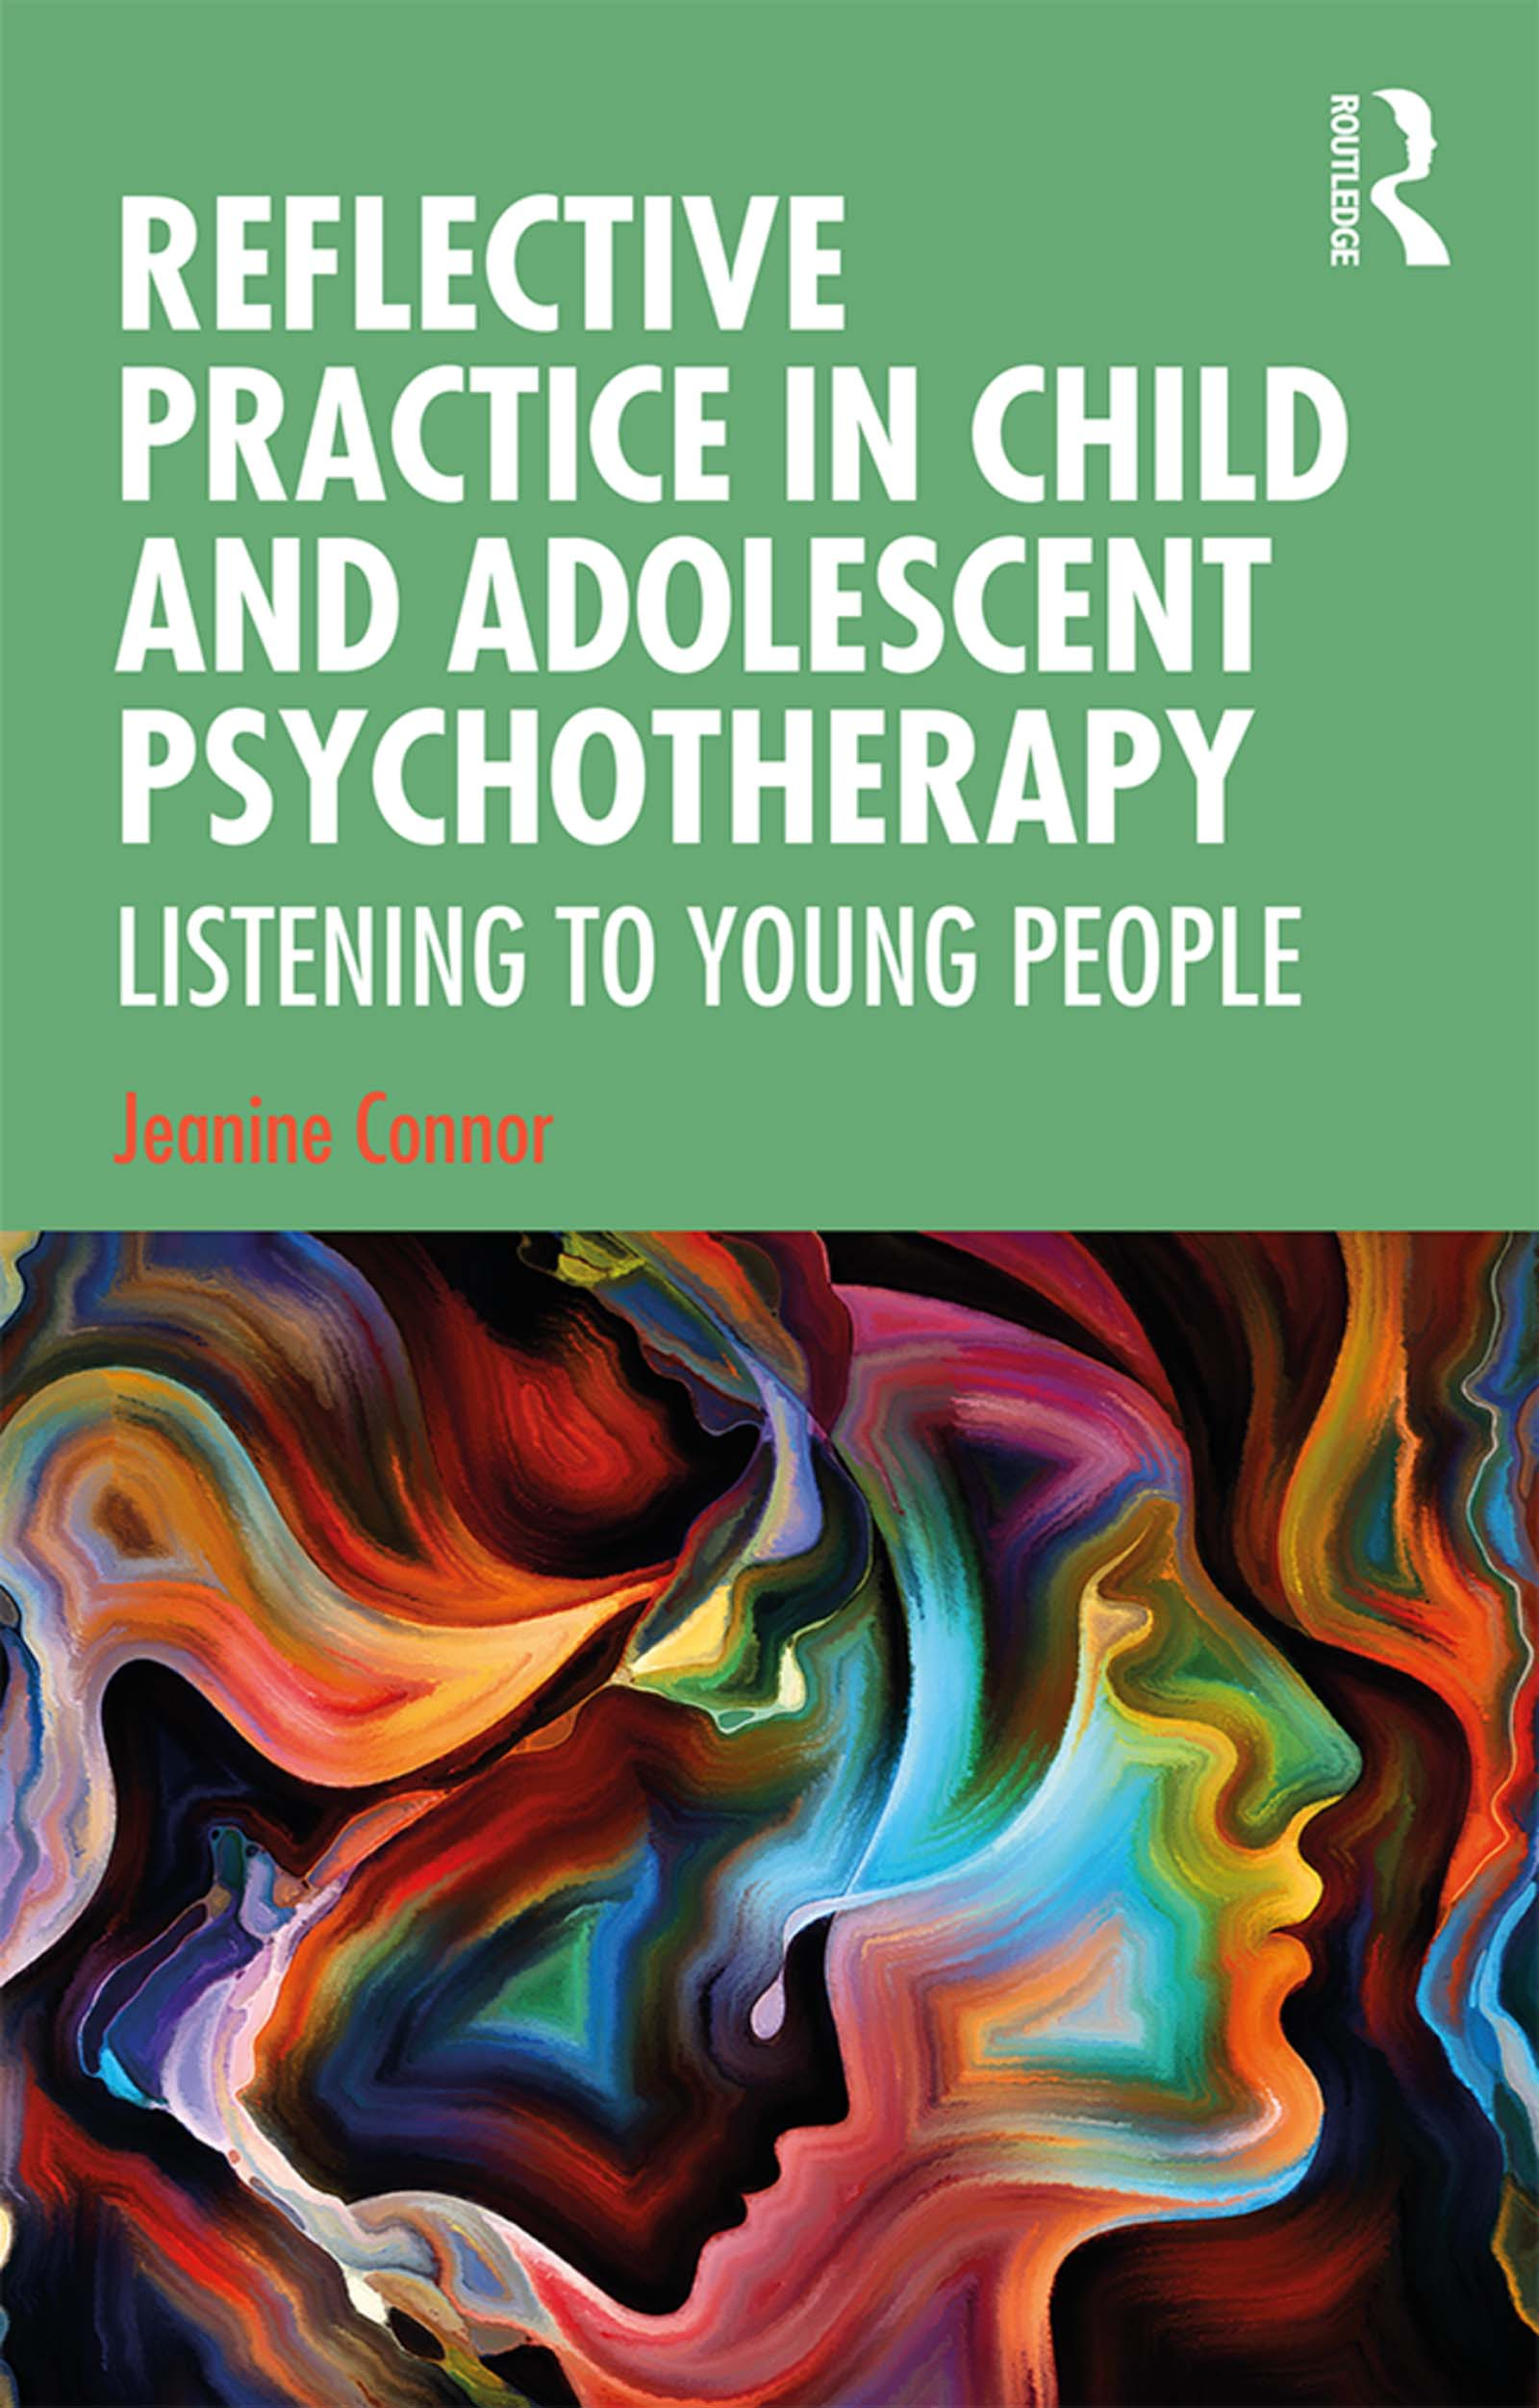 Reflective Practice in Child and Adolescent Psychotherapy: Listening to Young People book cover